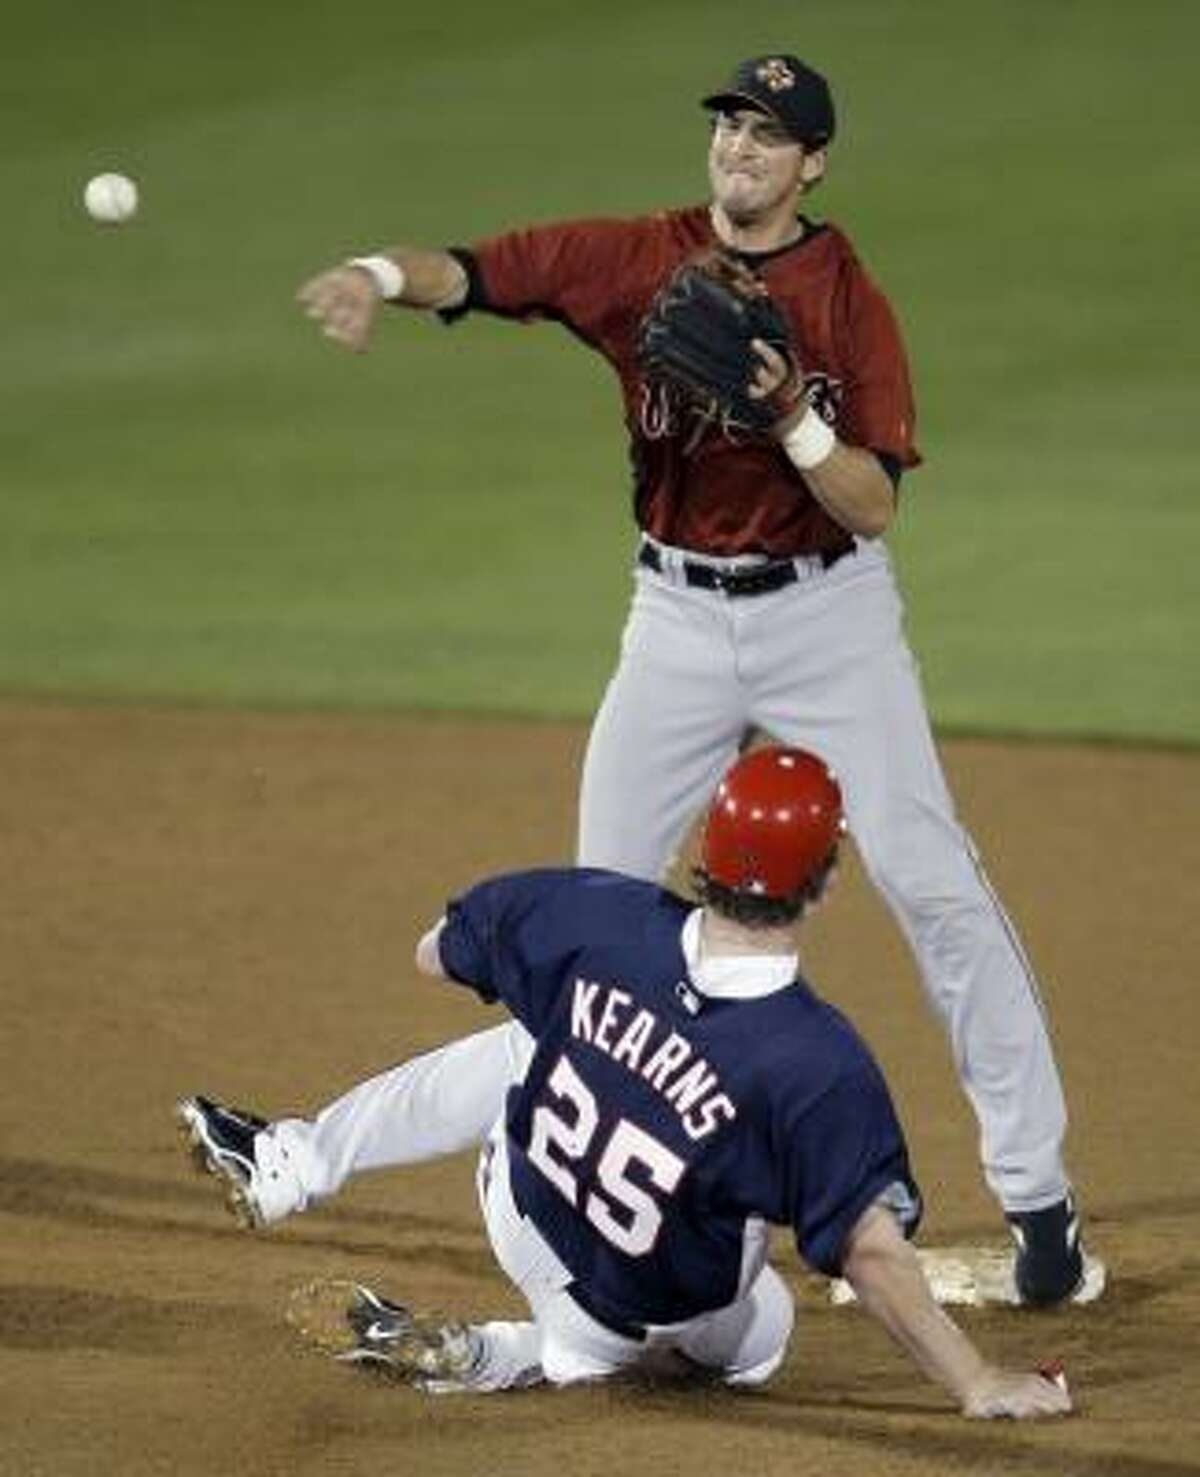 Astros shortstop Tommy Manzella throws to first after forcing out Washington Nationals outfielder Austin Kearns at second during the third inning.